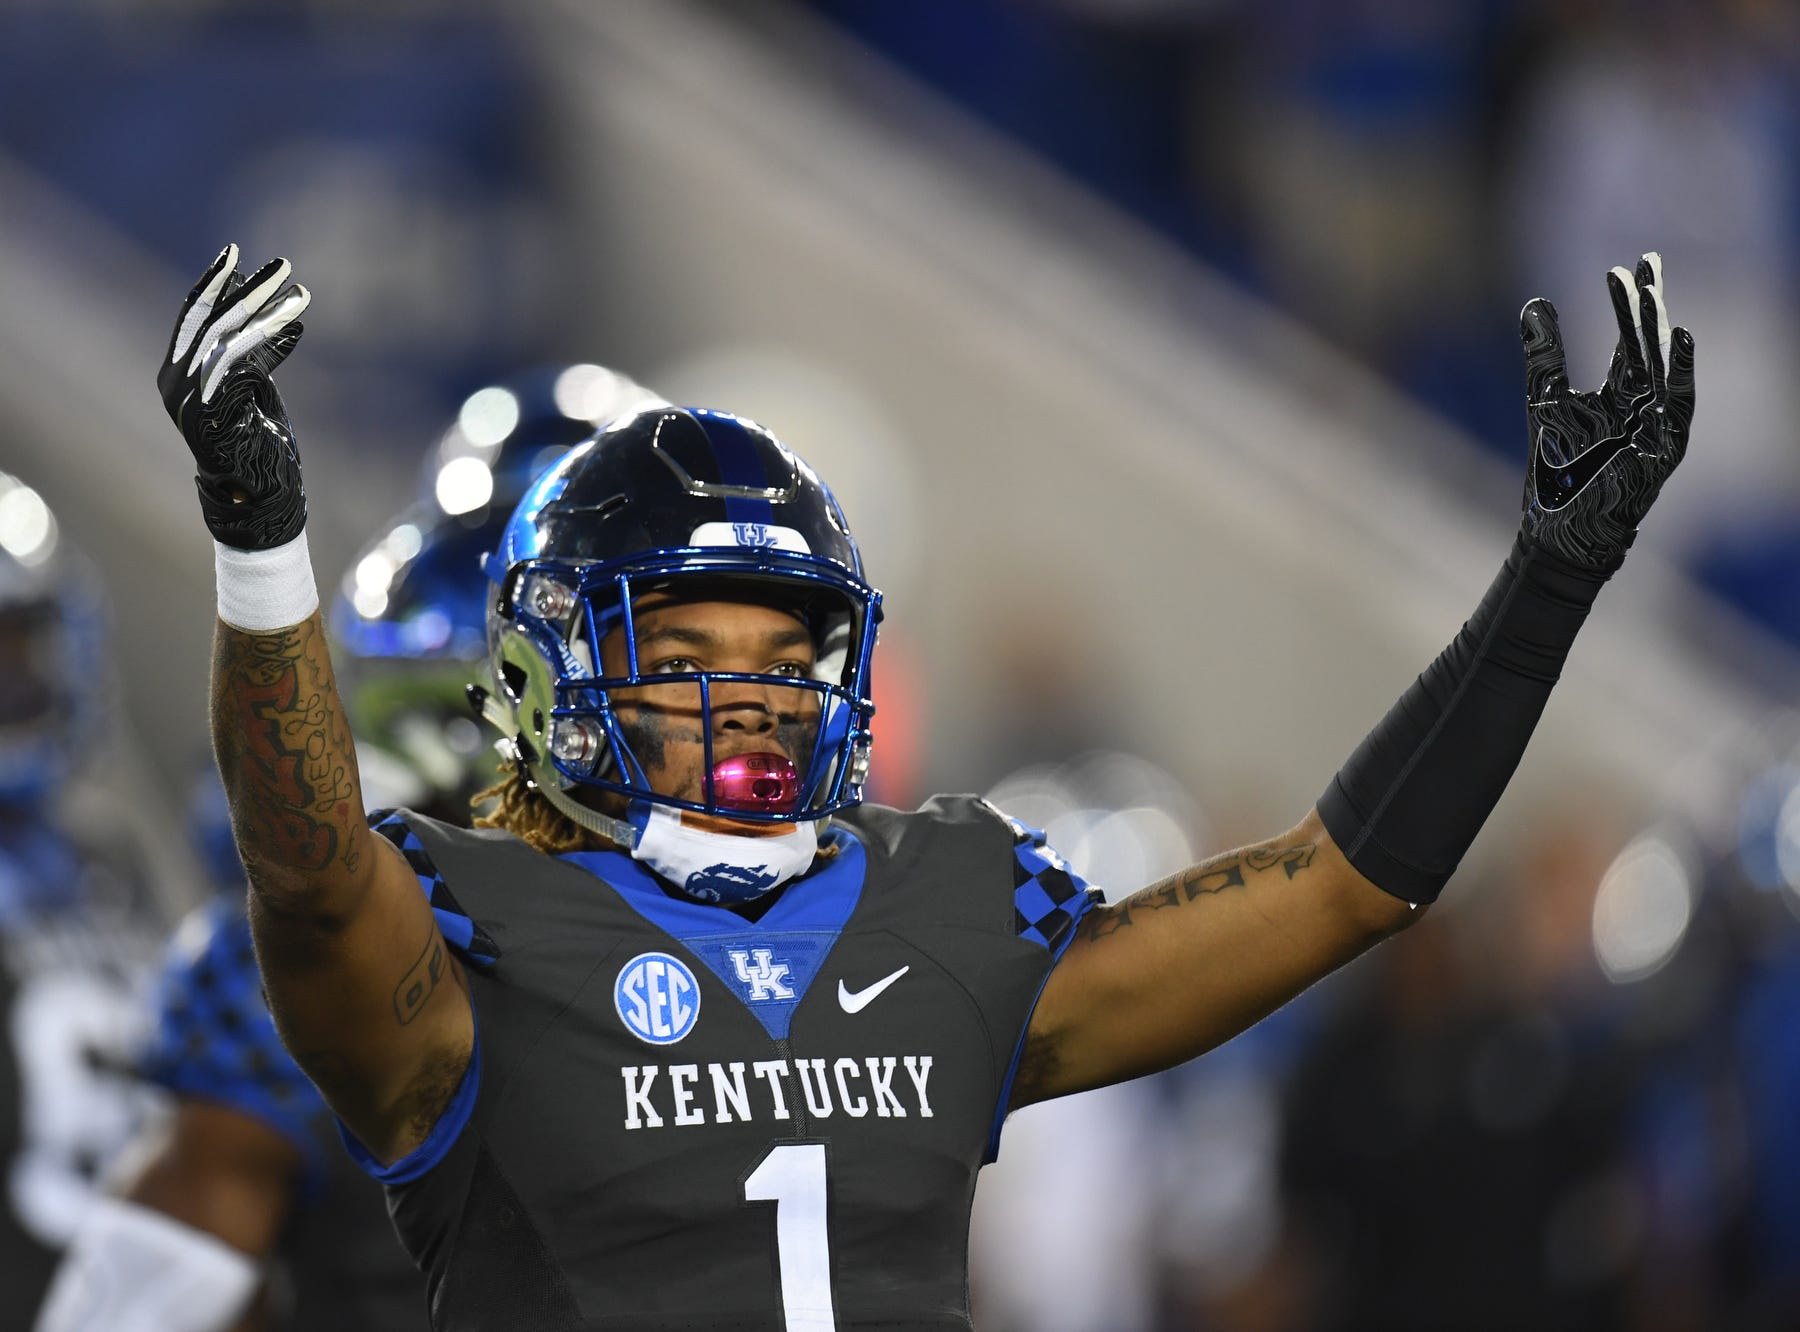 UK WR Lynn Bowden, Jr. during the University of Kentucky football game against South Carolina at Kroger Field in Lexington, Kentucky on Saturday, September 29, 2018.